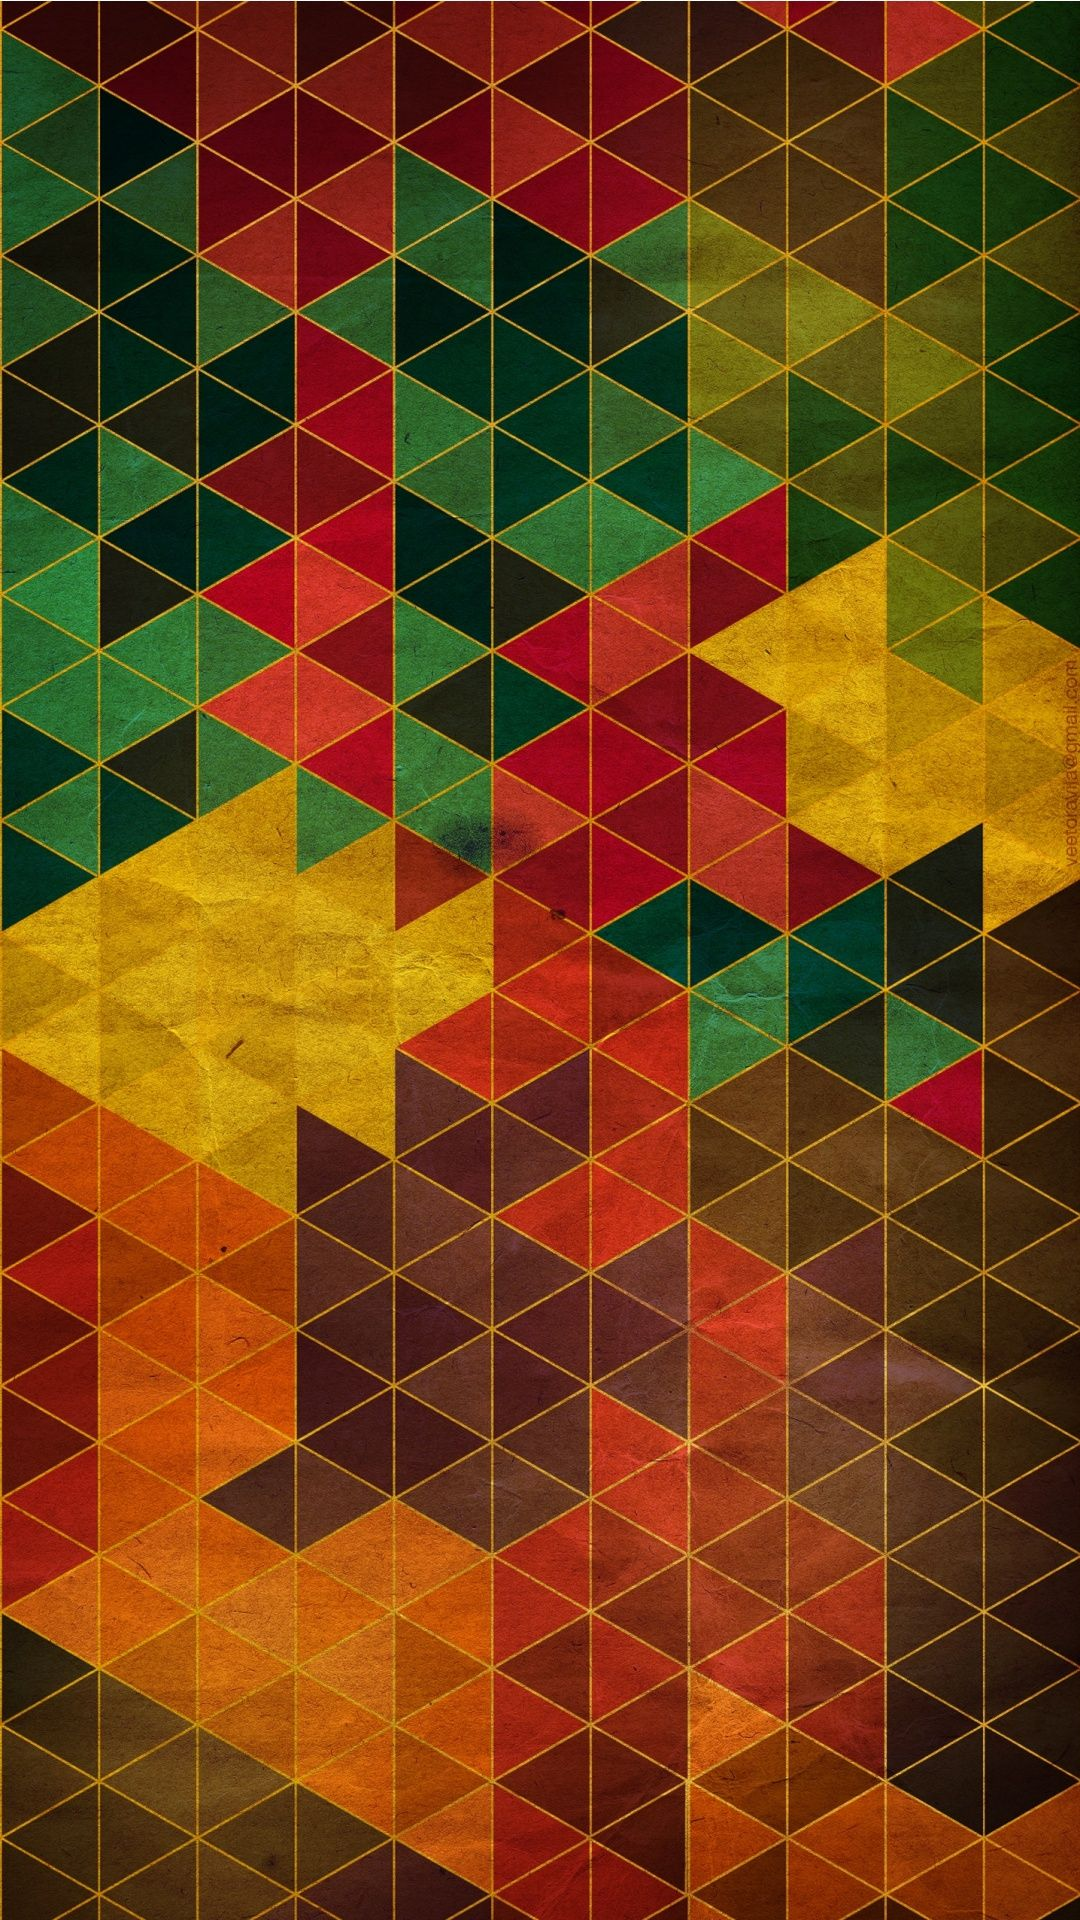 Free Colorful Geometric Wallpaper: Tap Image For More Beautiful IPhone Background! Cool Warm